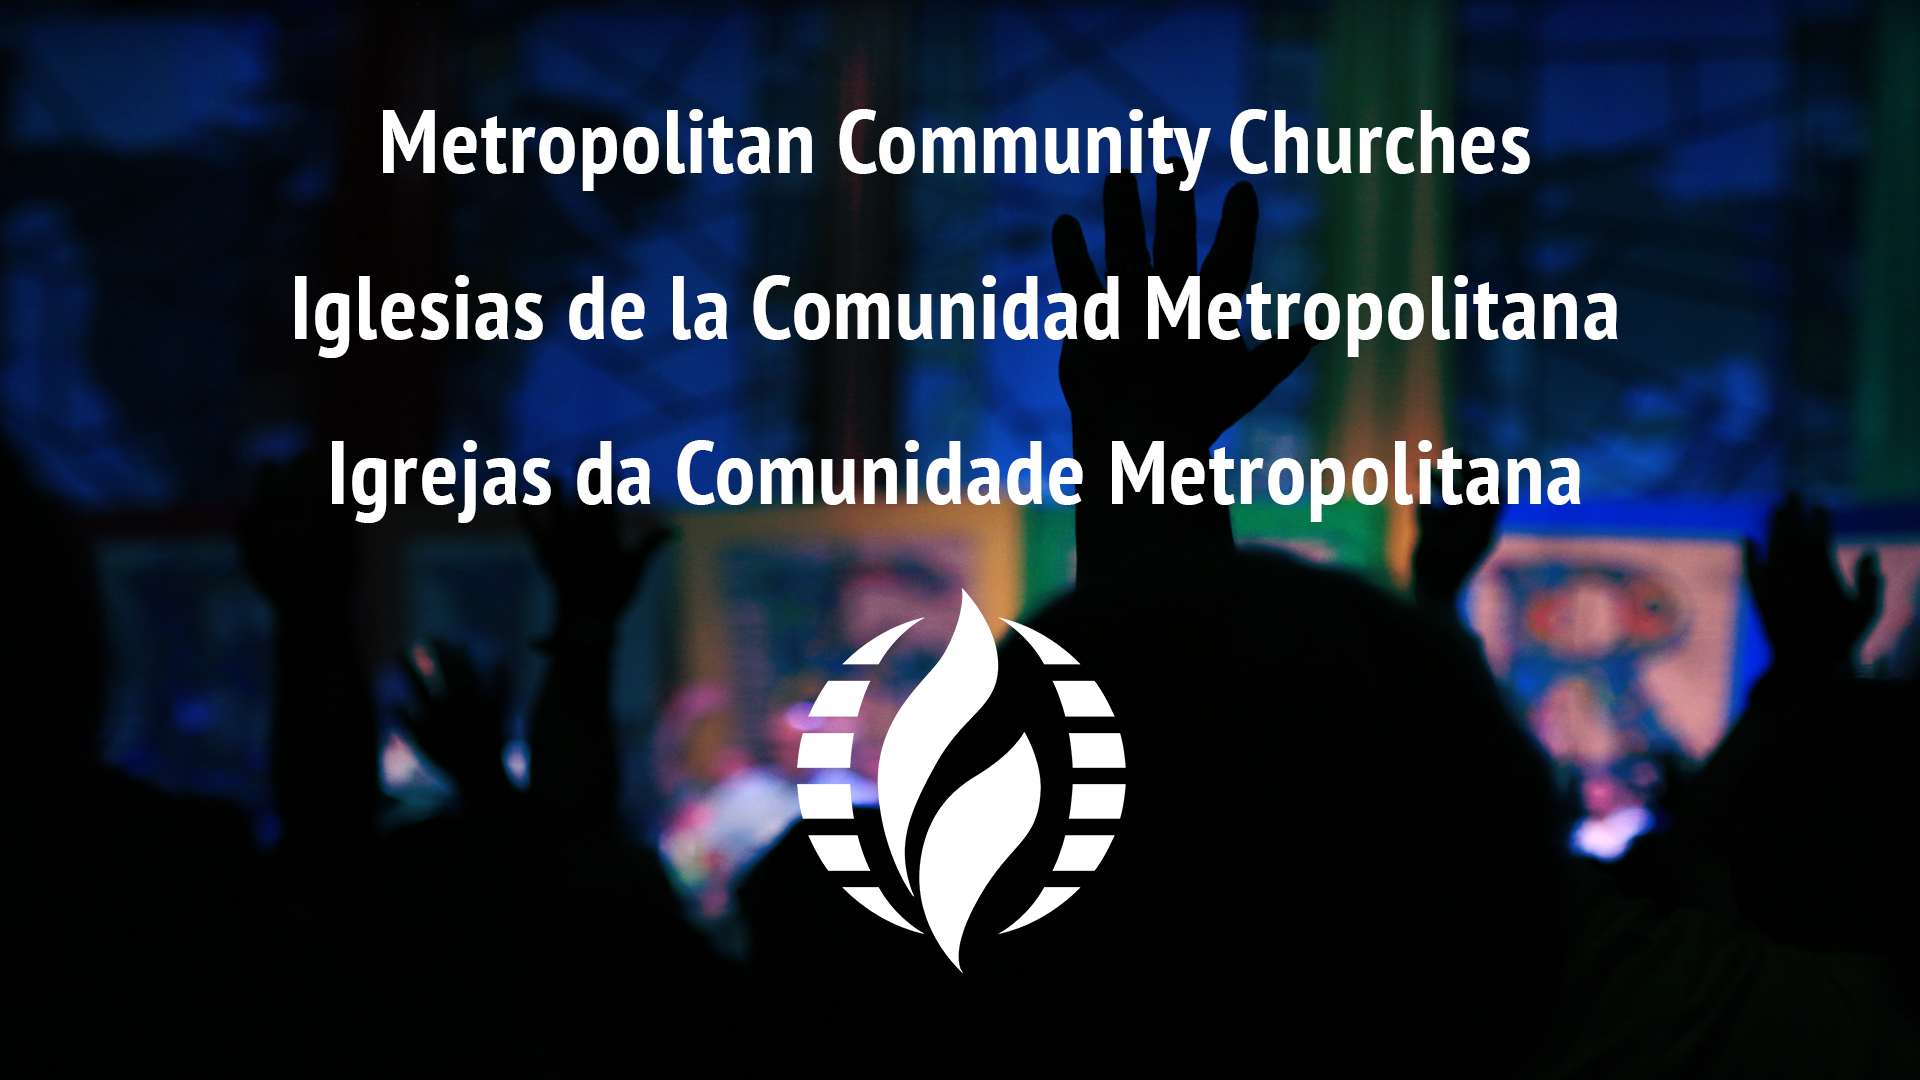 Welcome to Metropolitan Community Churches